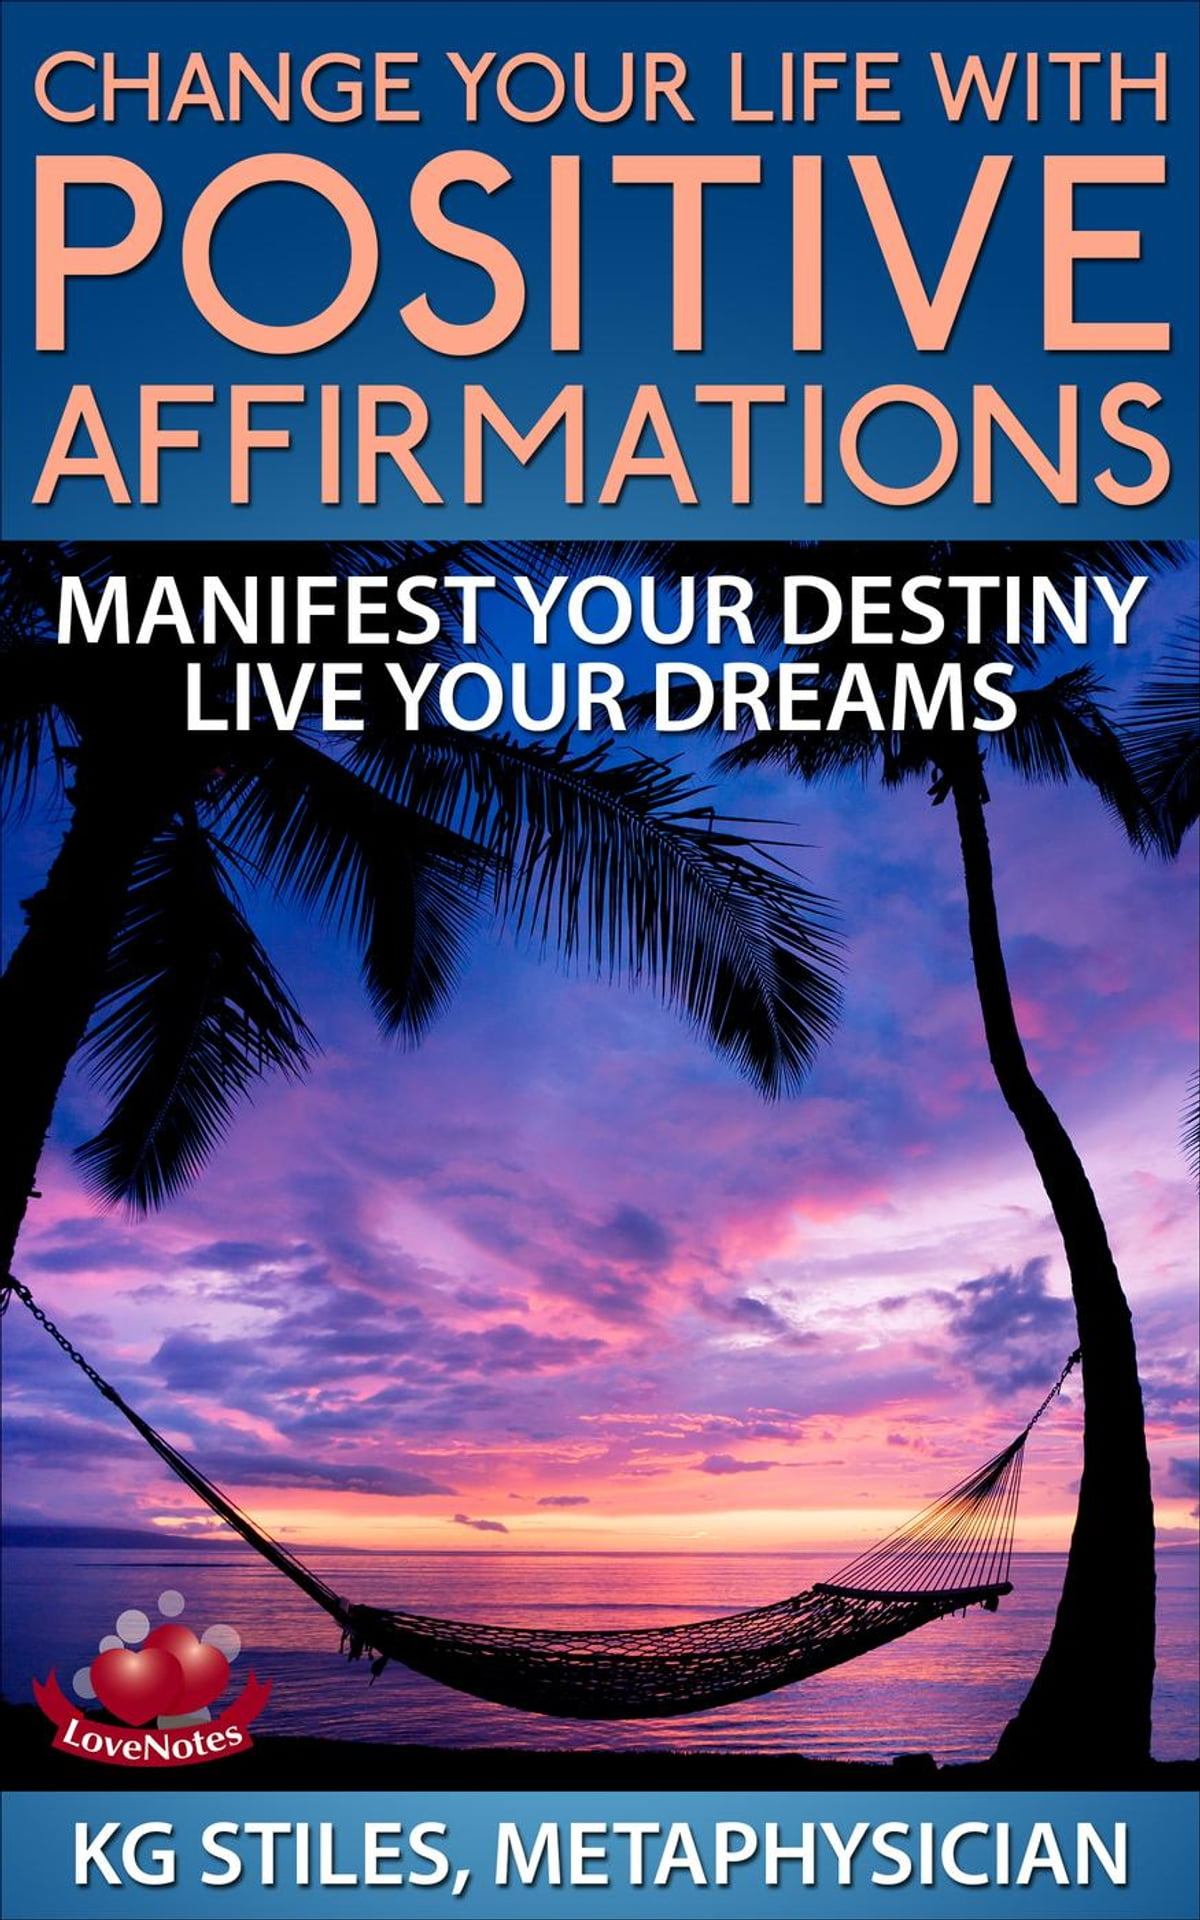 Change Your Life With Positive Affirmations Manifest Your Destiny Live Your Dreams Ebook By Kg Stiles 9781519995711 Rakuten Kobo United States